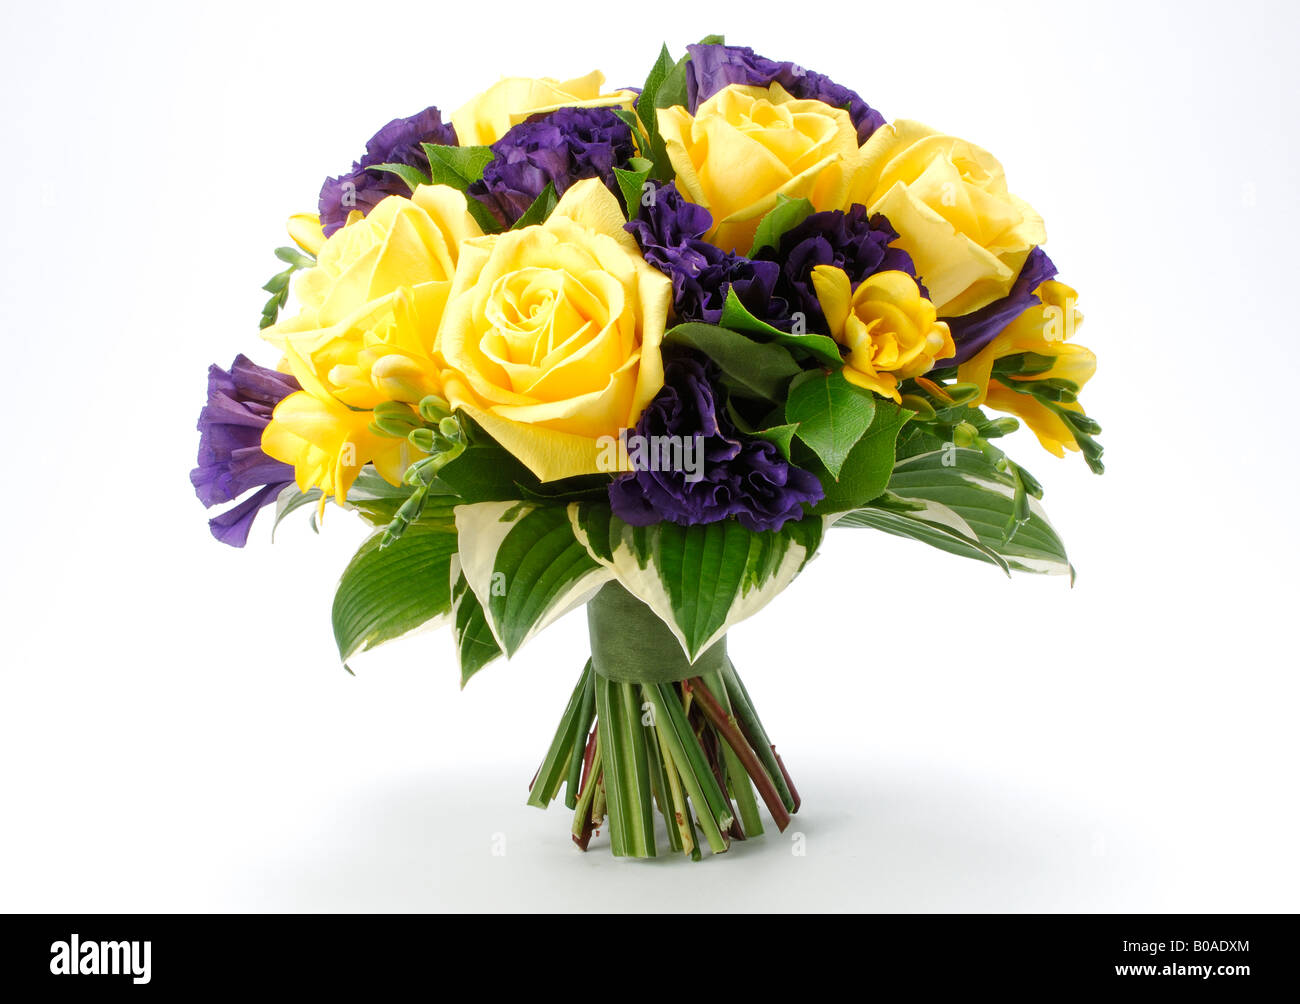 A bouquet of arranged flowers yellow roses hybrid tea rose and a bouquet of arranged flowers yellow roses hybrid tea rose and yellow freesia buds mightylinksfo